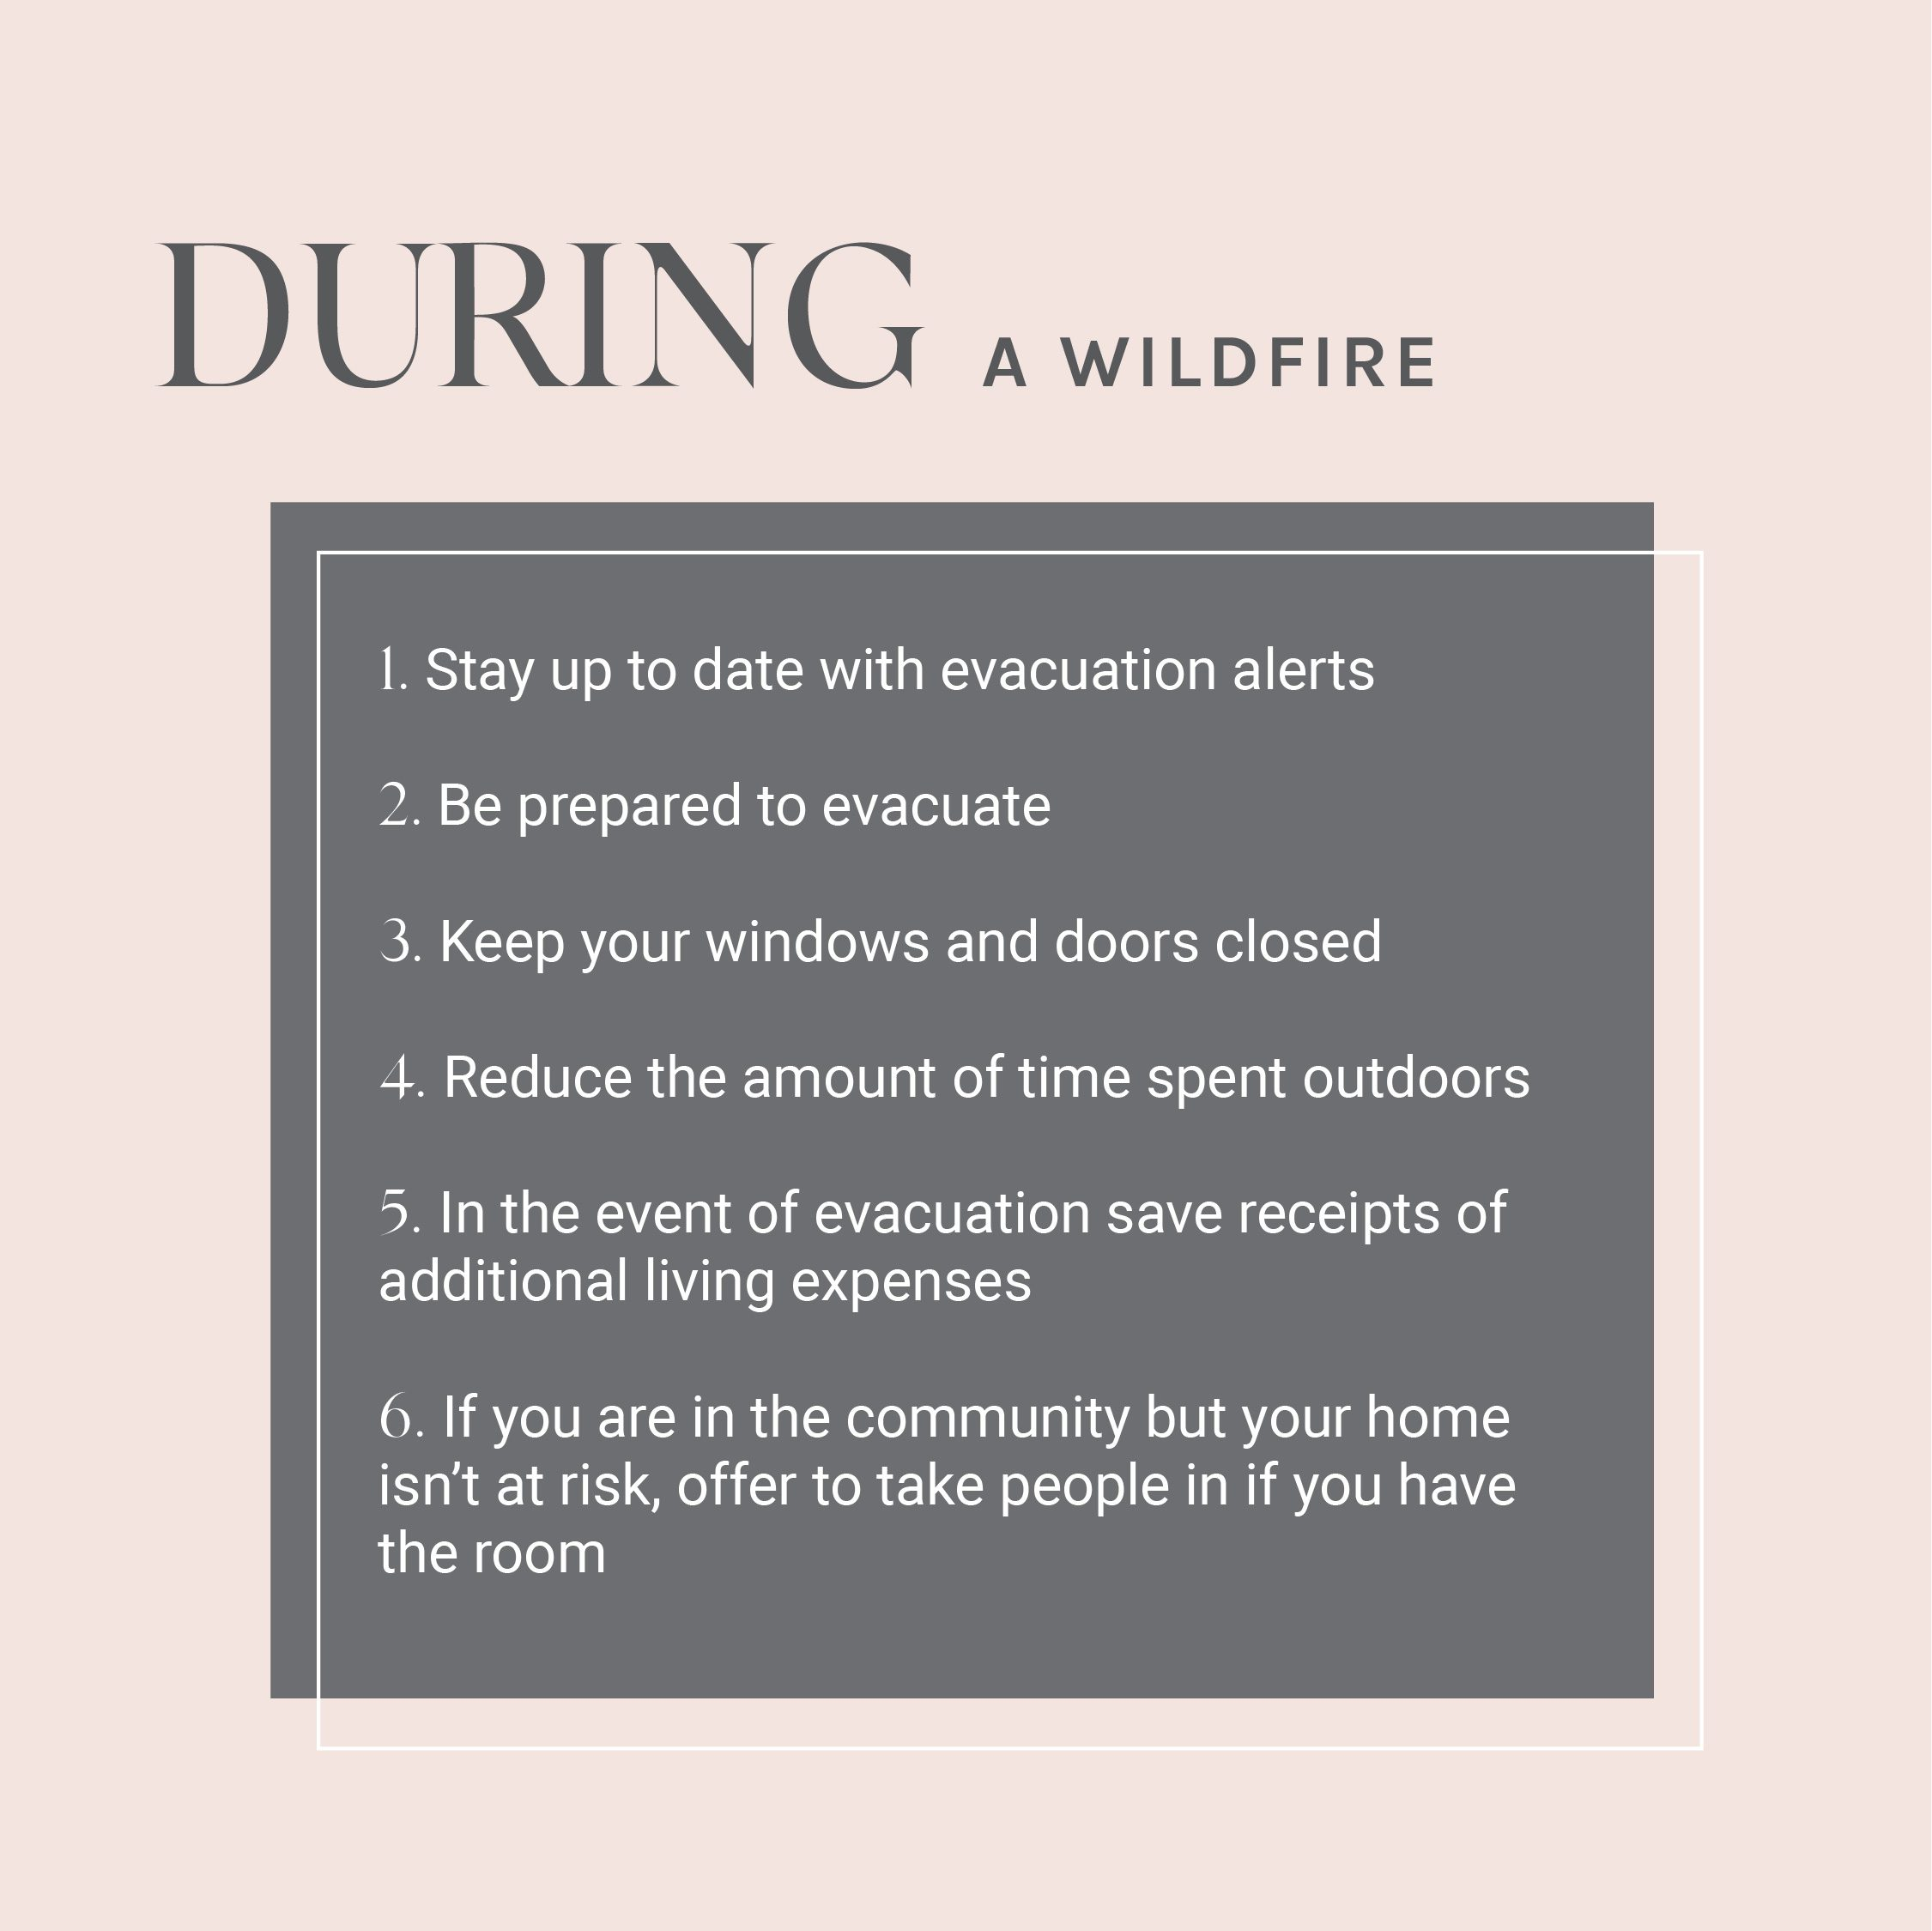 What to do during a wildfires